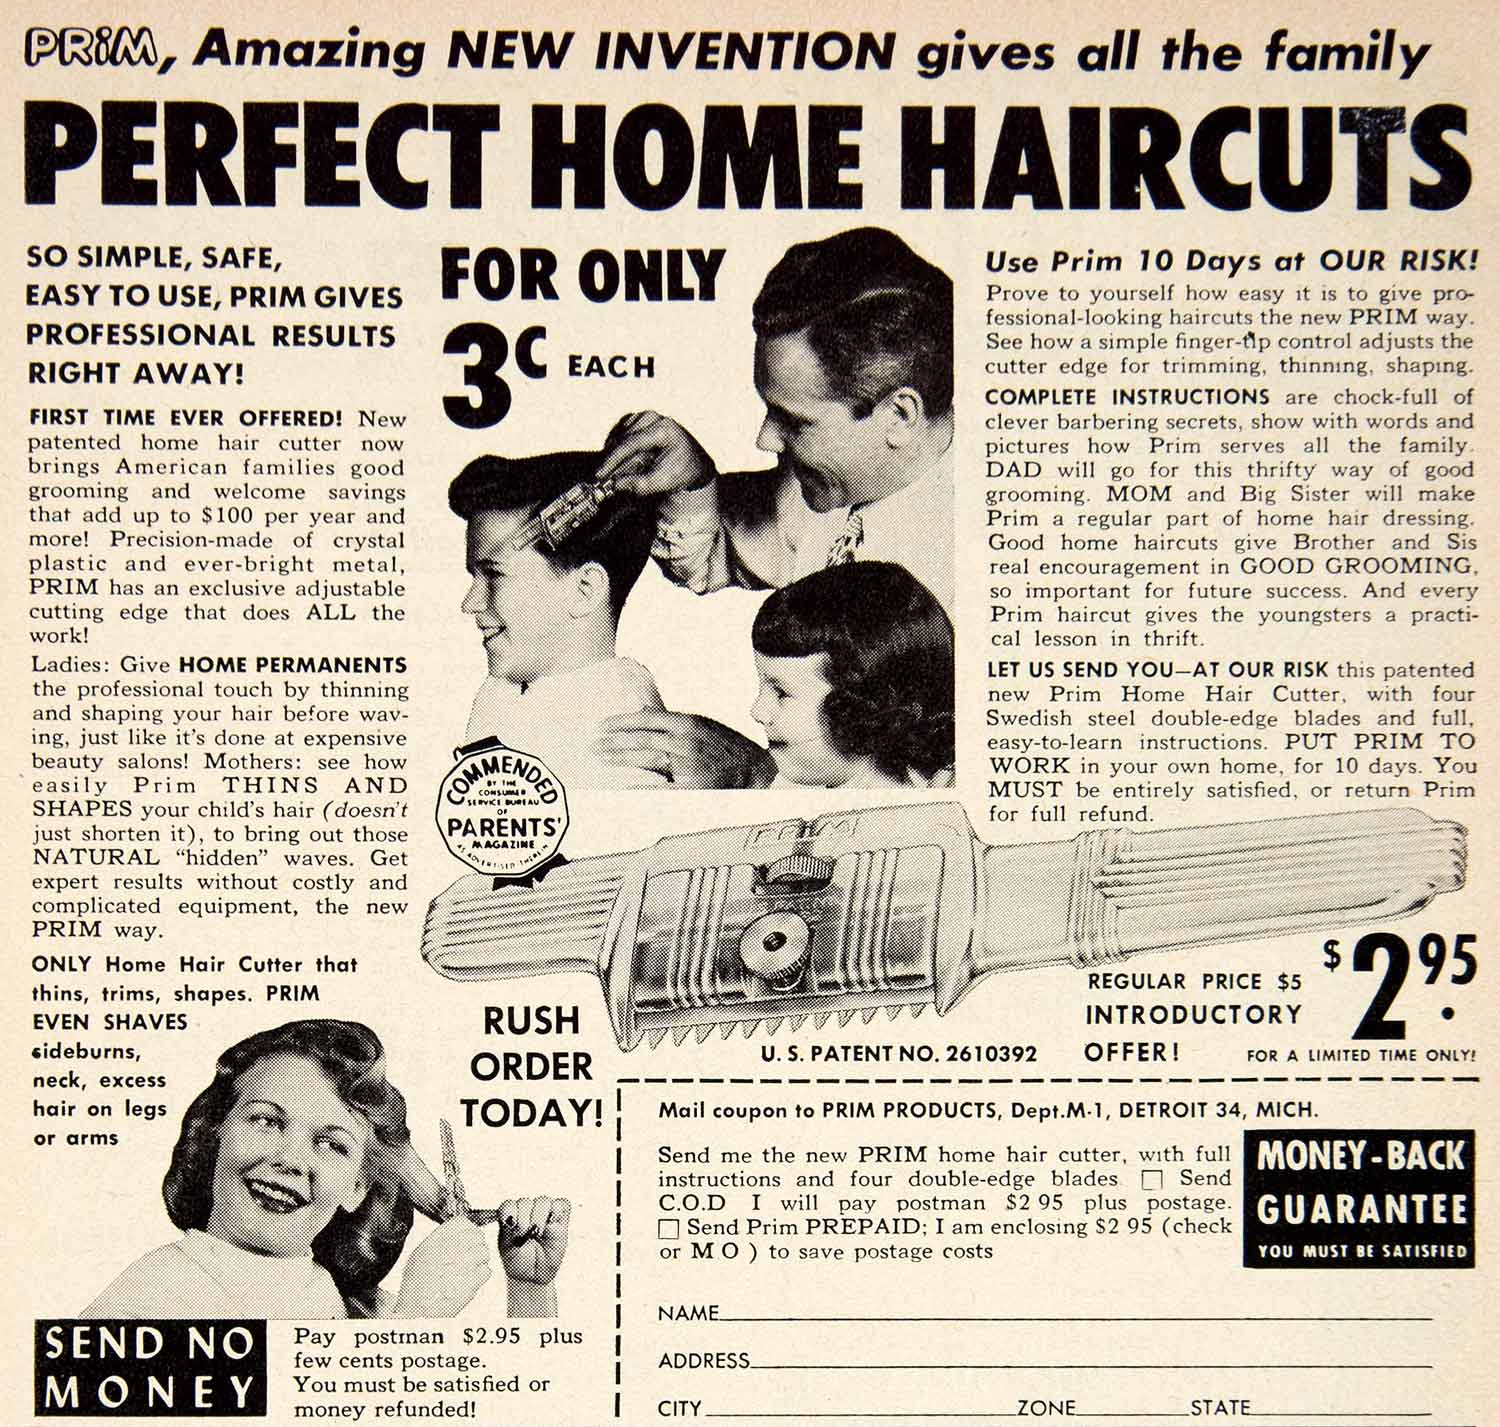 Haircut coupons toledo ohio - 1953 Ad Prim Products Detroit Haircut Hairdressing Children Thinner Layers Psc2